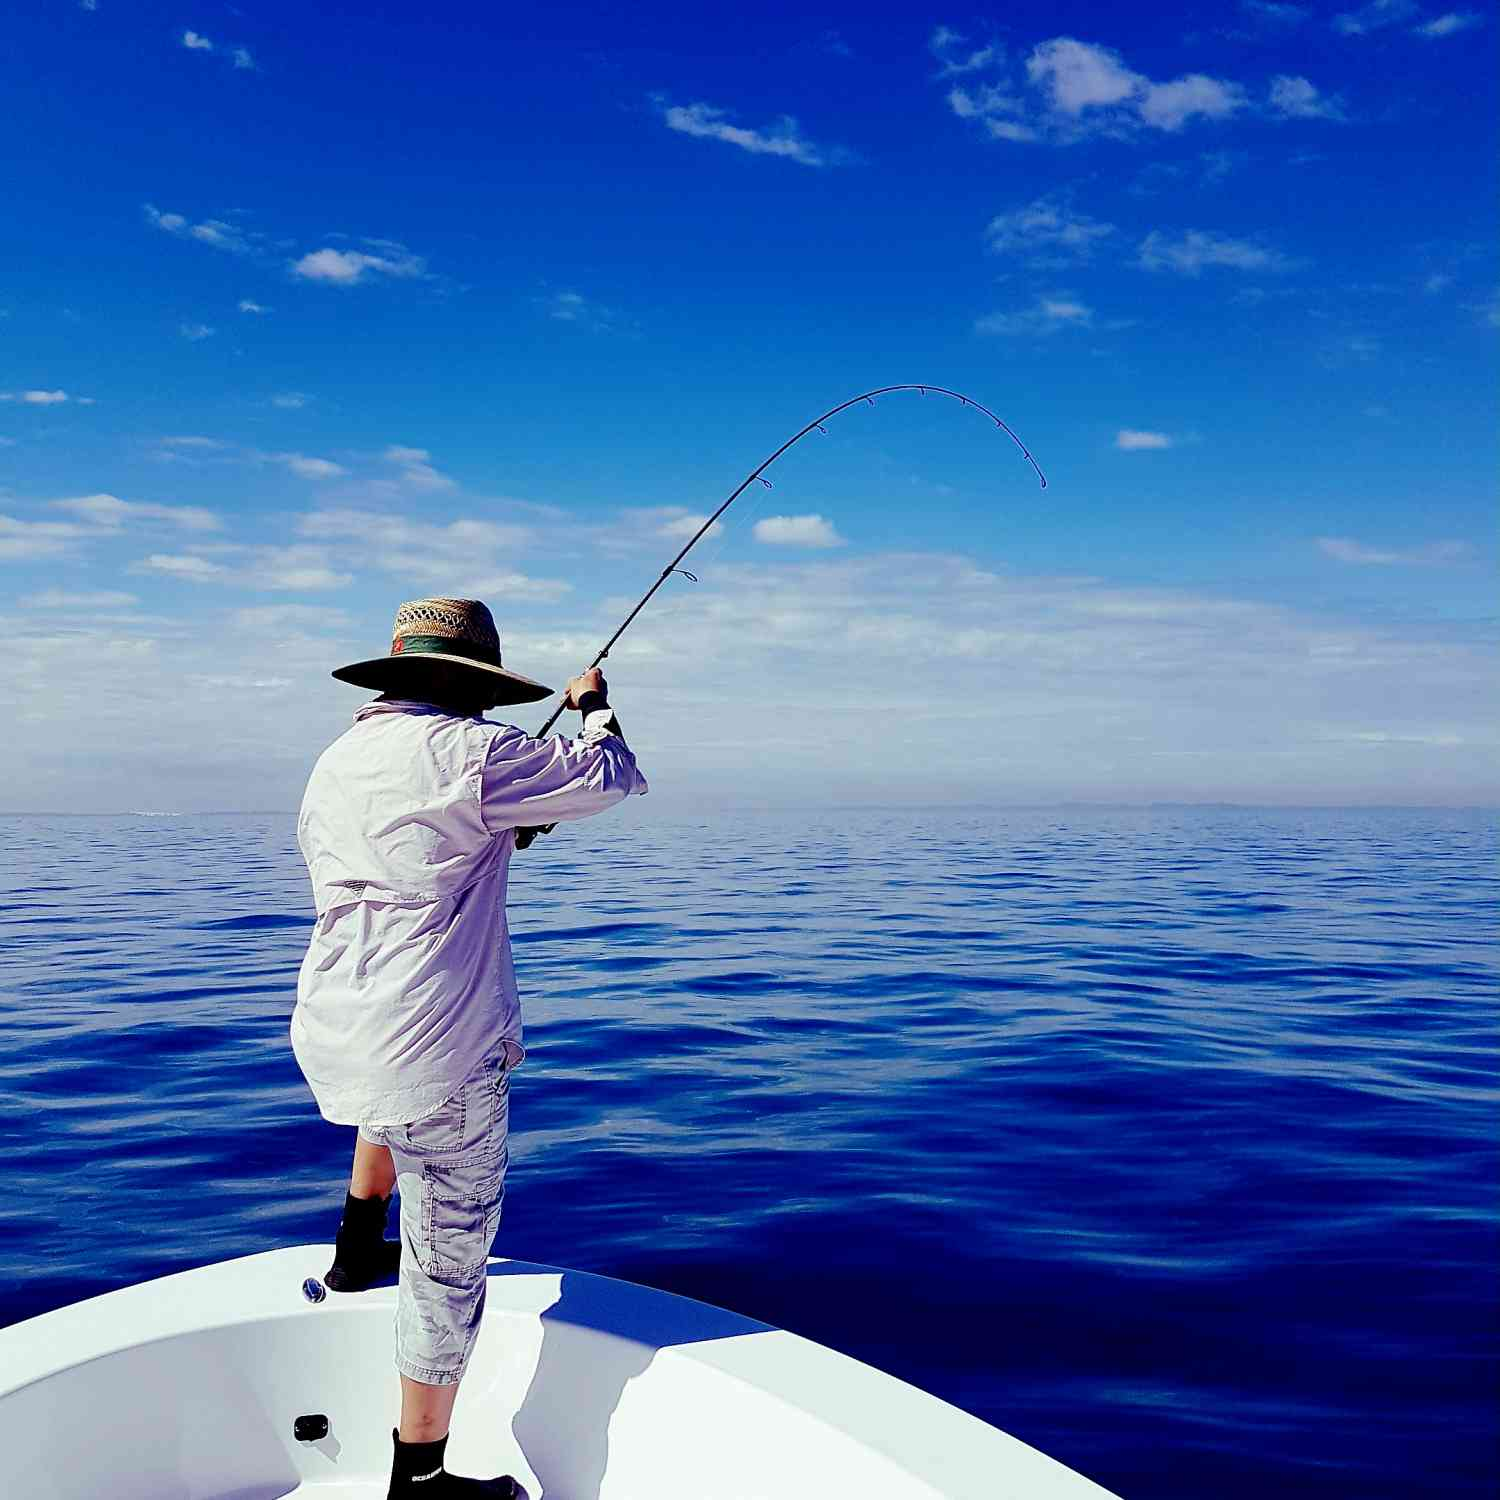 Title: The perfect day - On board their Sportsman Island Reef 19 Center Console - Location: Brisbane. Participating in the Photo Contest #SportsmanAugust2018